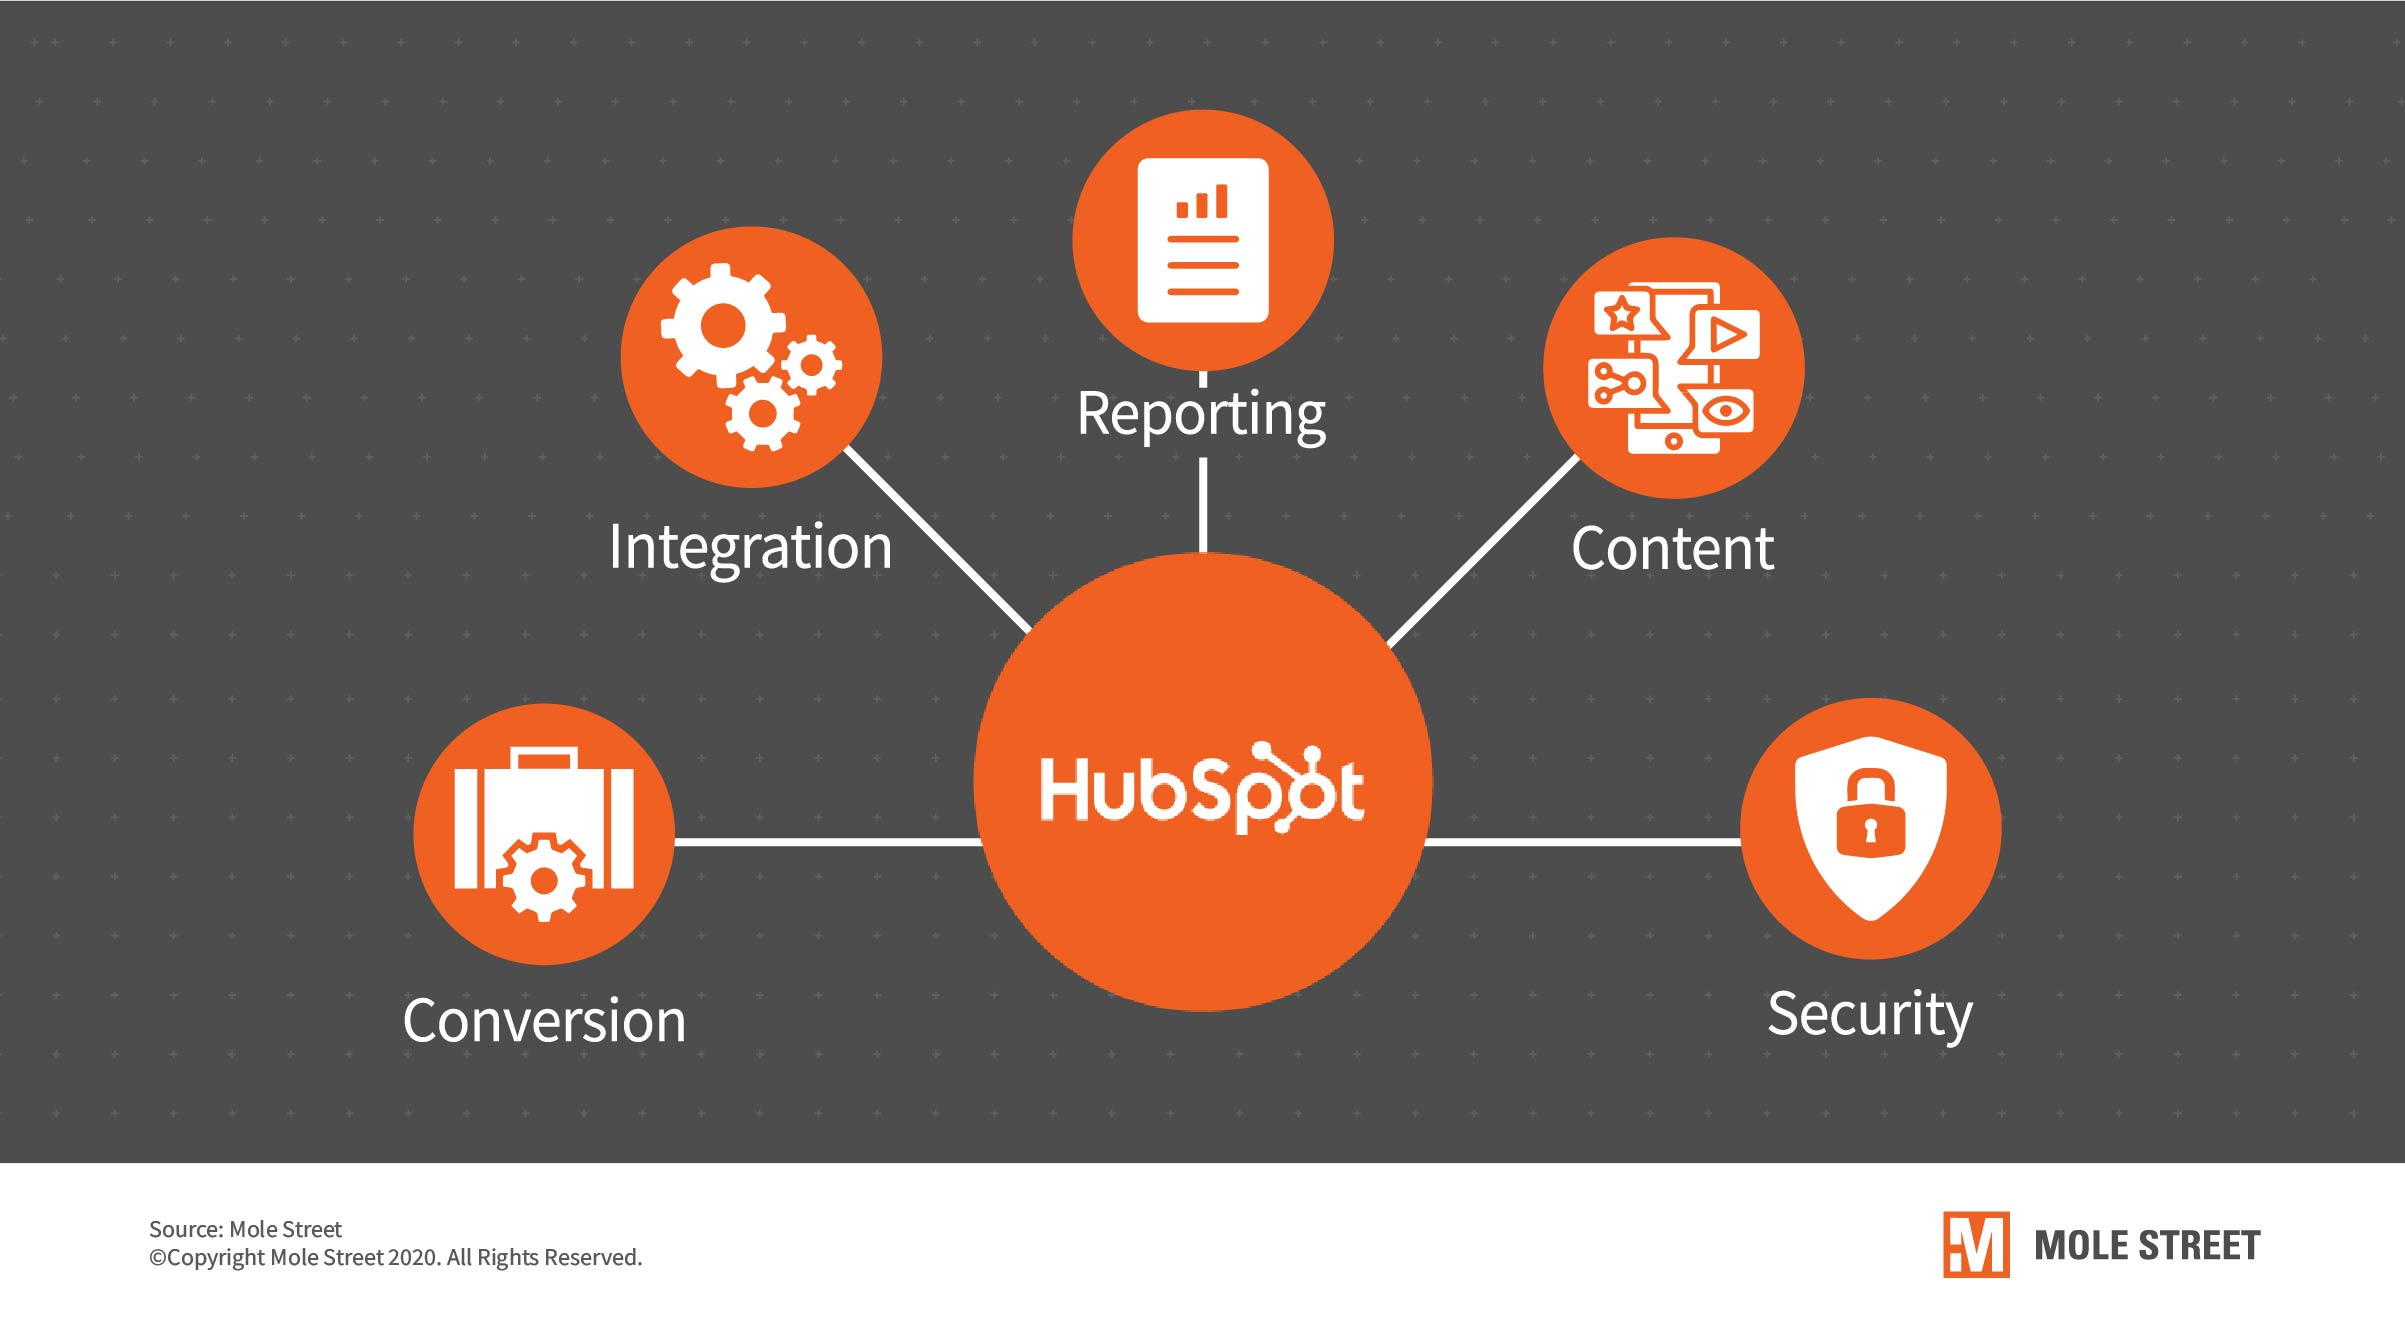 hubspot-integration-security-and-conversion